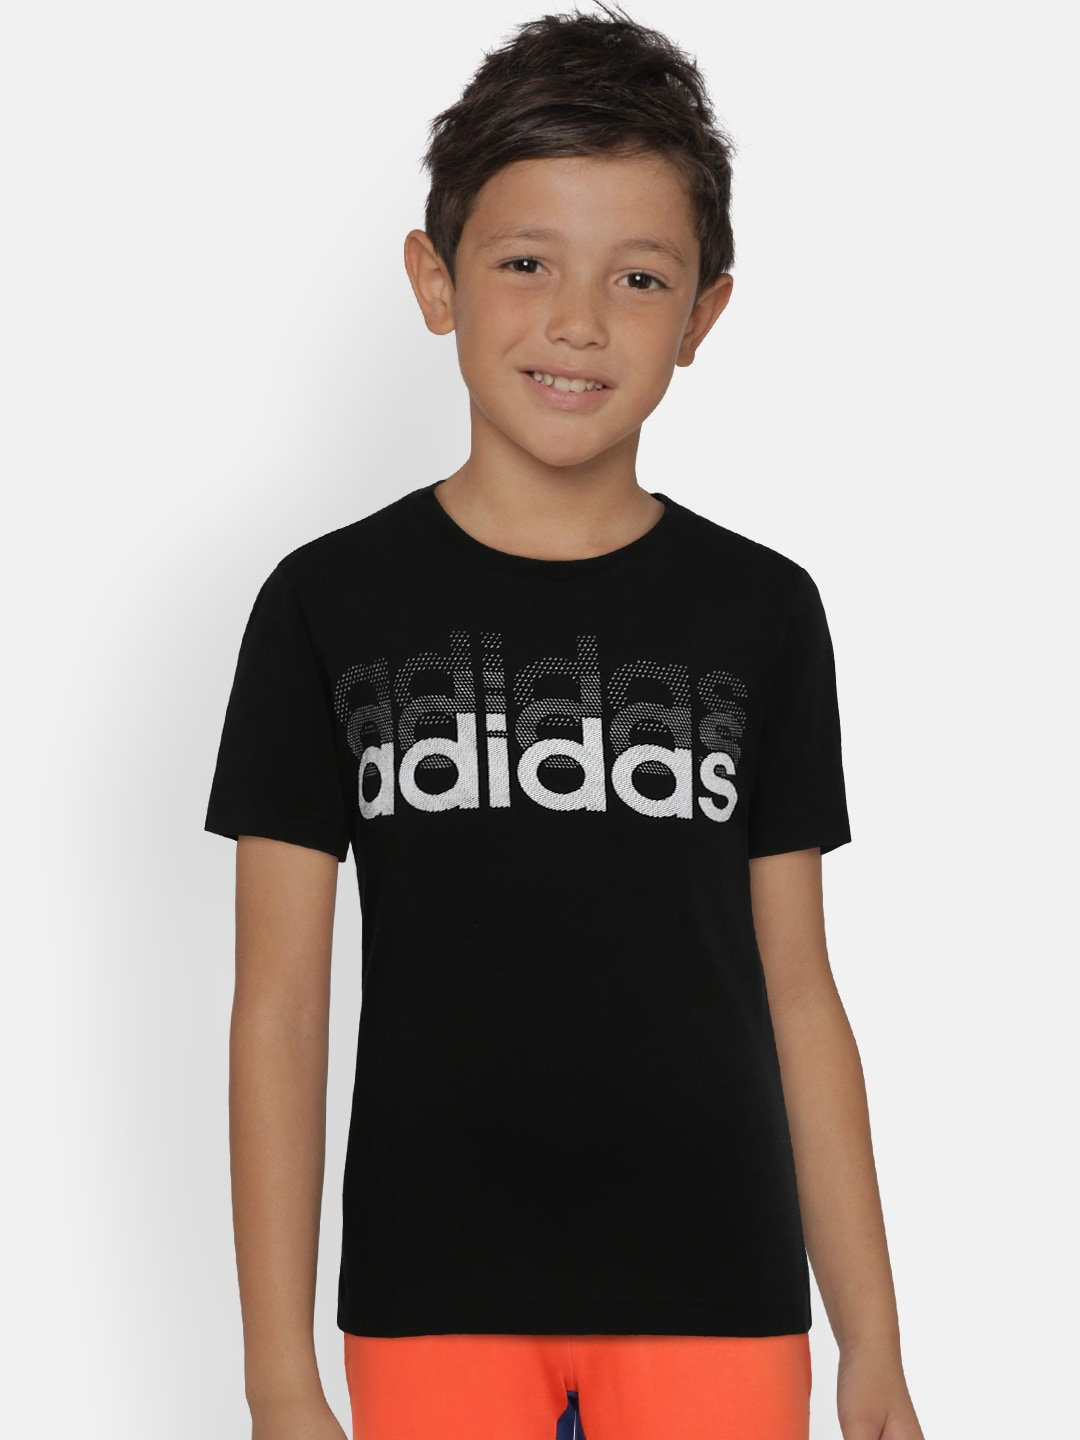 free shipping 526cb 109ce Adidas Boys Girls Topwear - Buy Adidas Boys Girls Topwear online in India